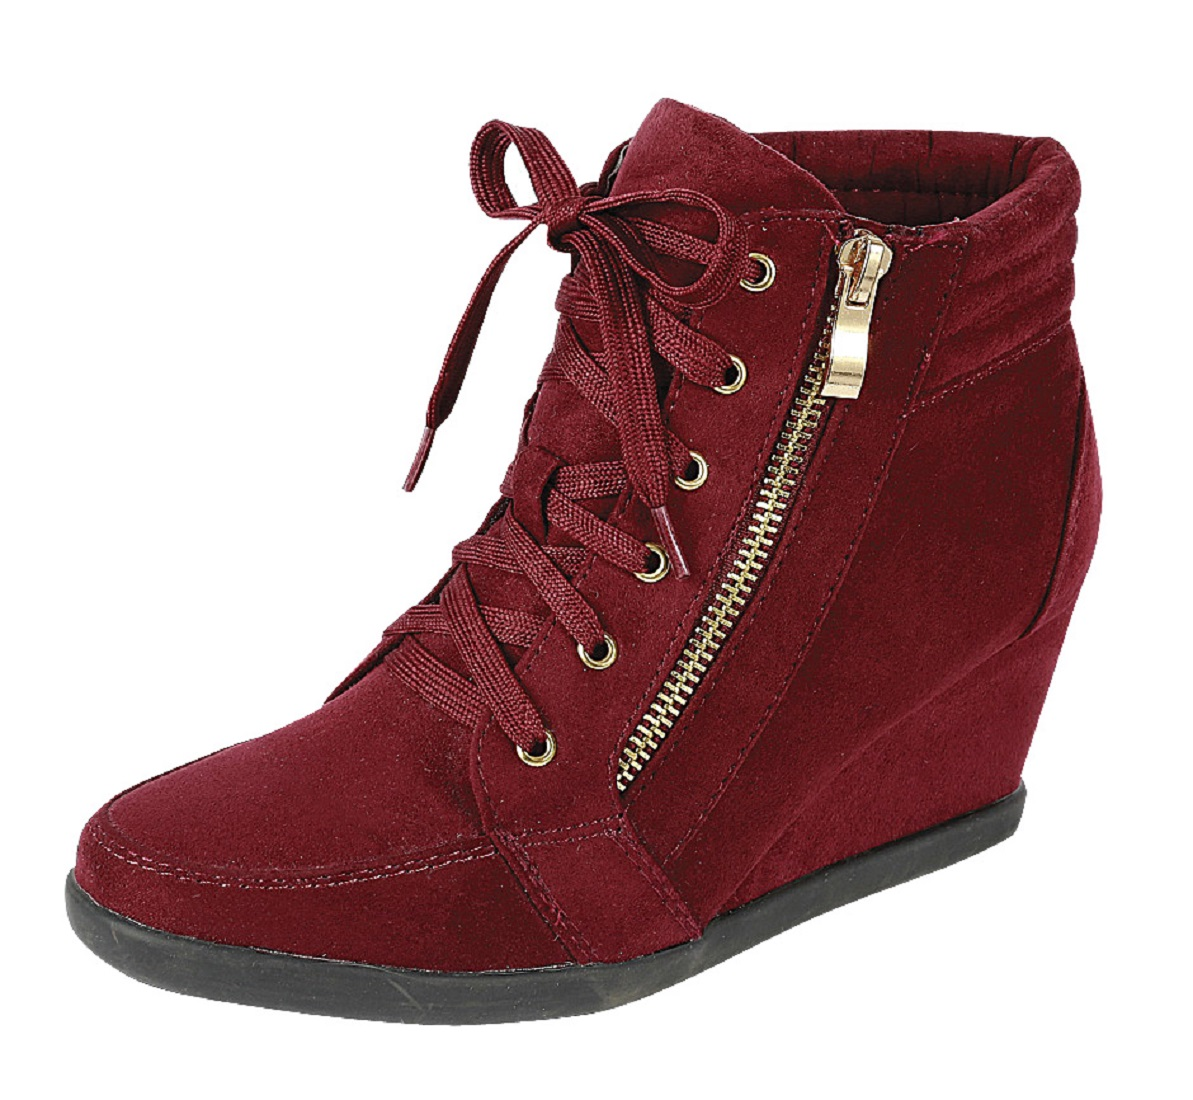 Peggy-56 Womens Hidden Wedge Low Mid Heel Ankle Boots Sneakers Zip up Lace Up Trainers Shoes Burgundy